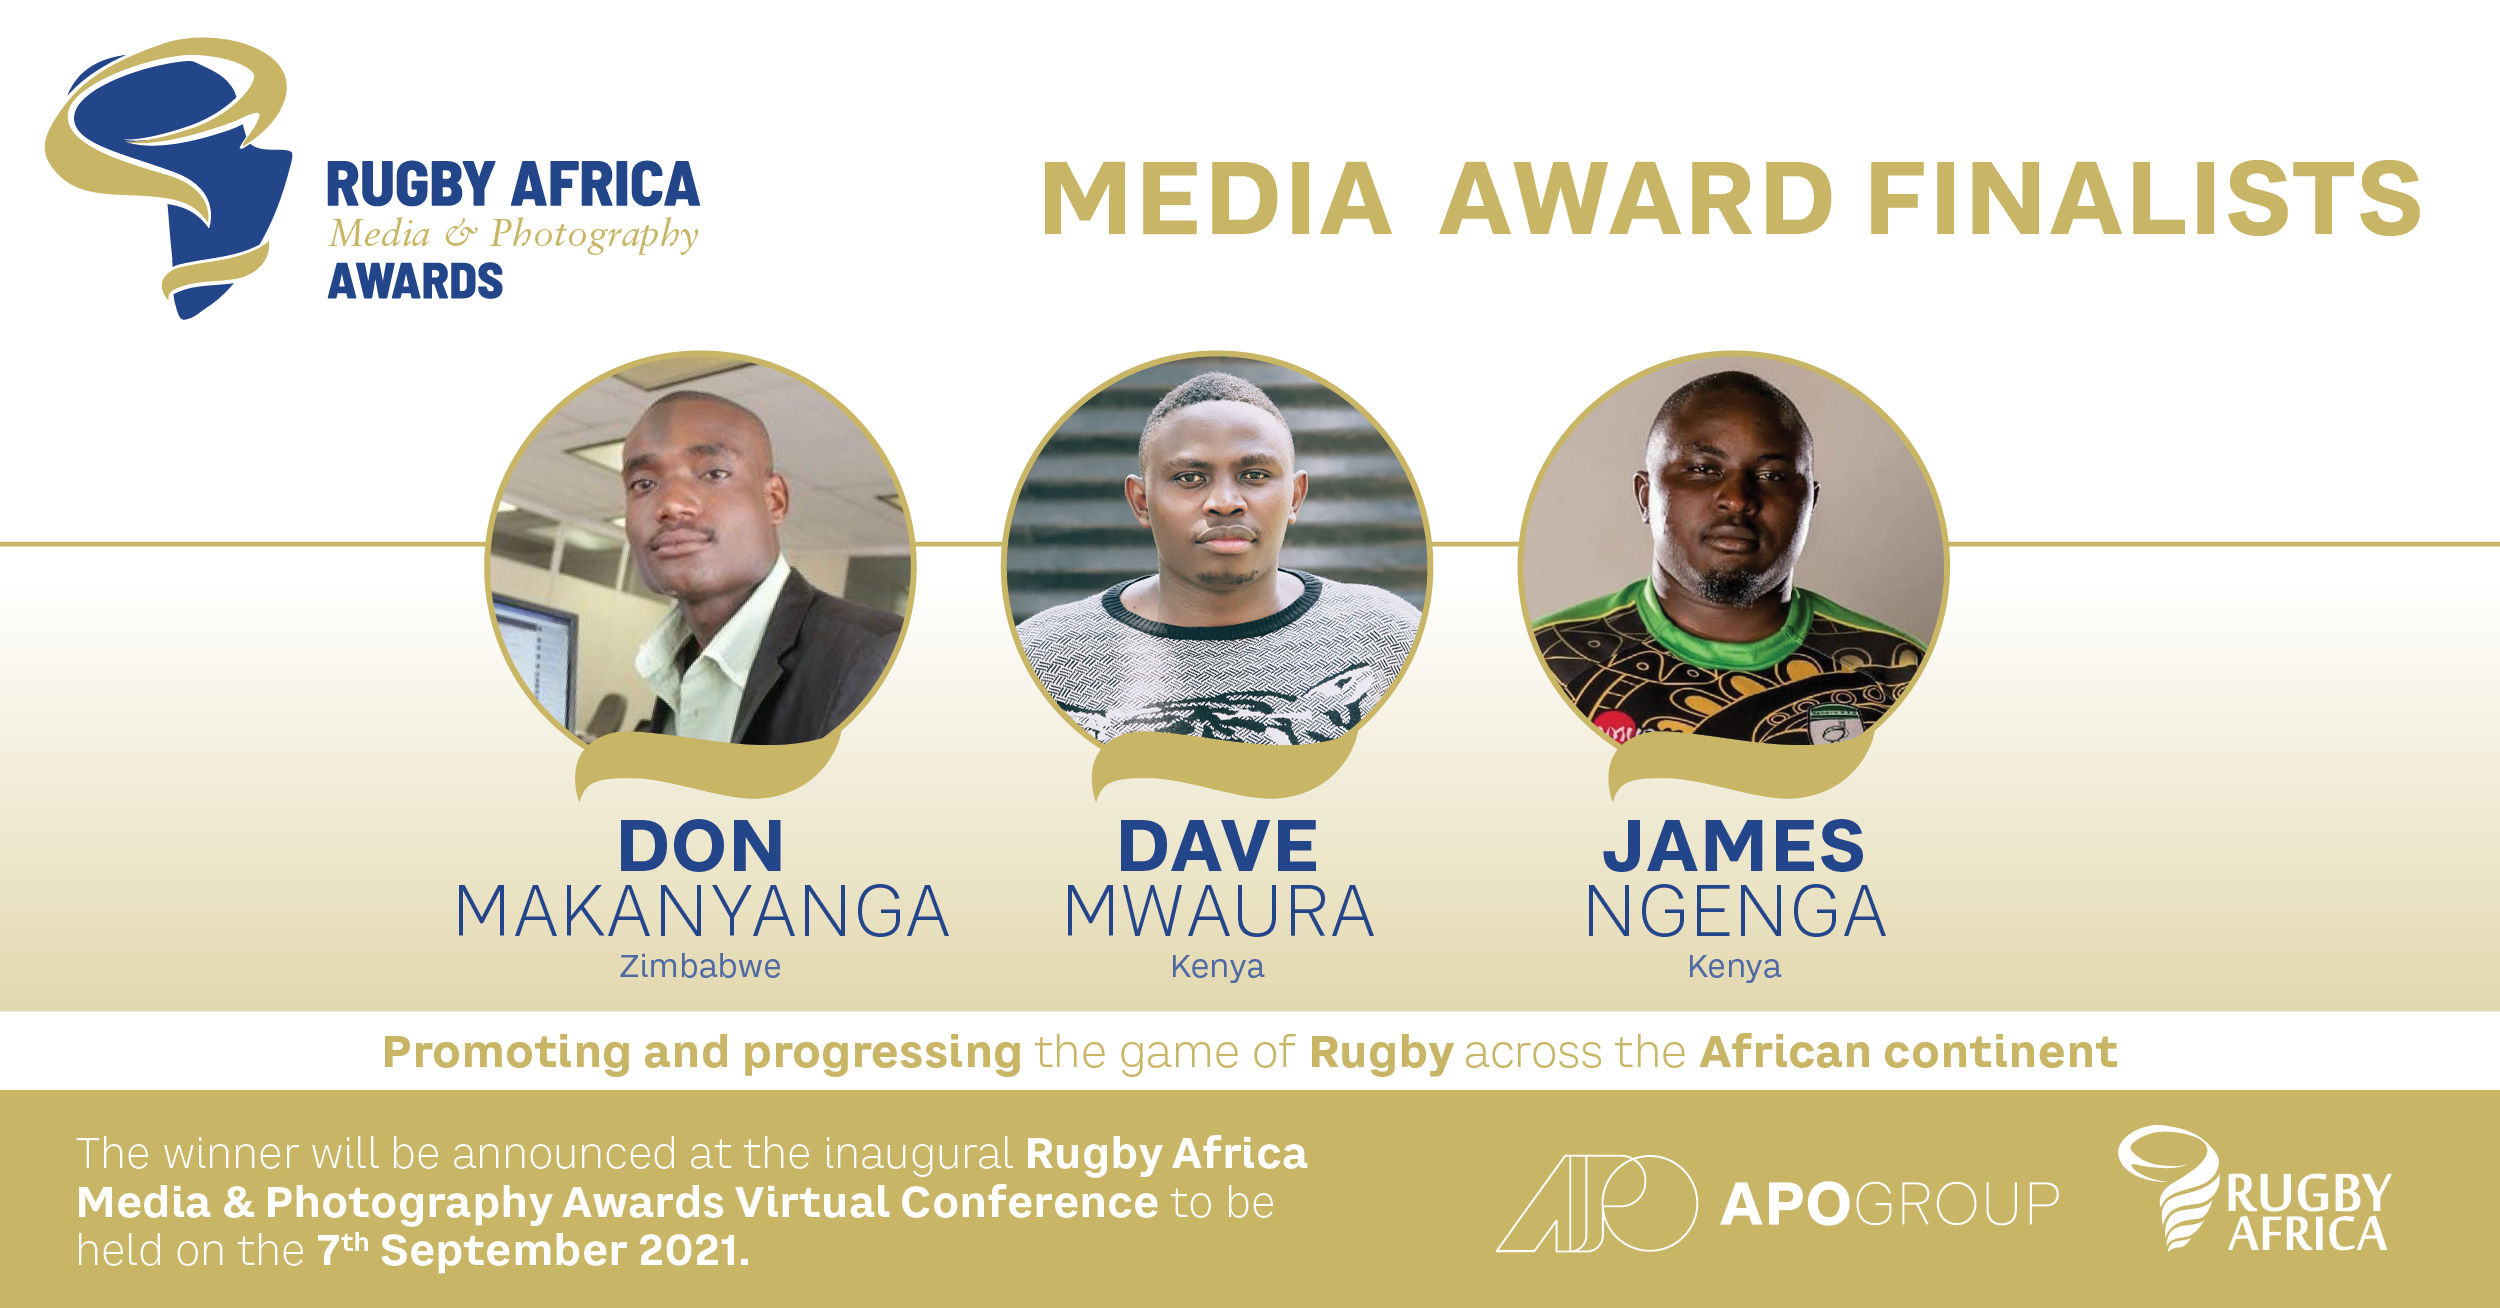 Finalists announced for the inaugural Rugby Africa Media and Photography Awards